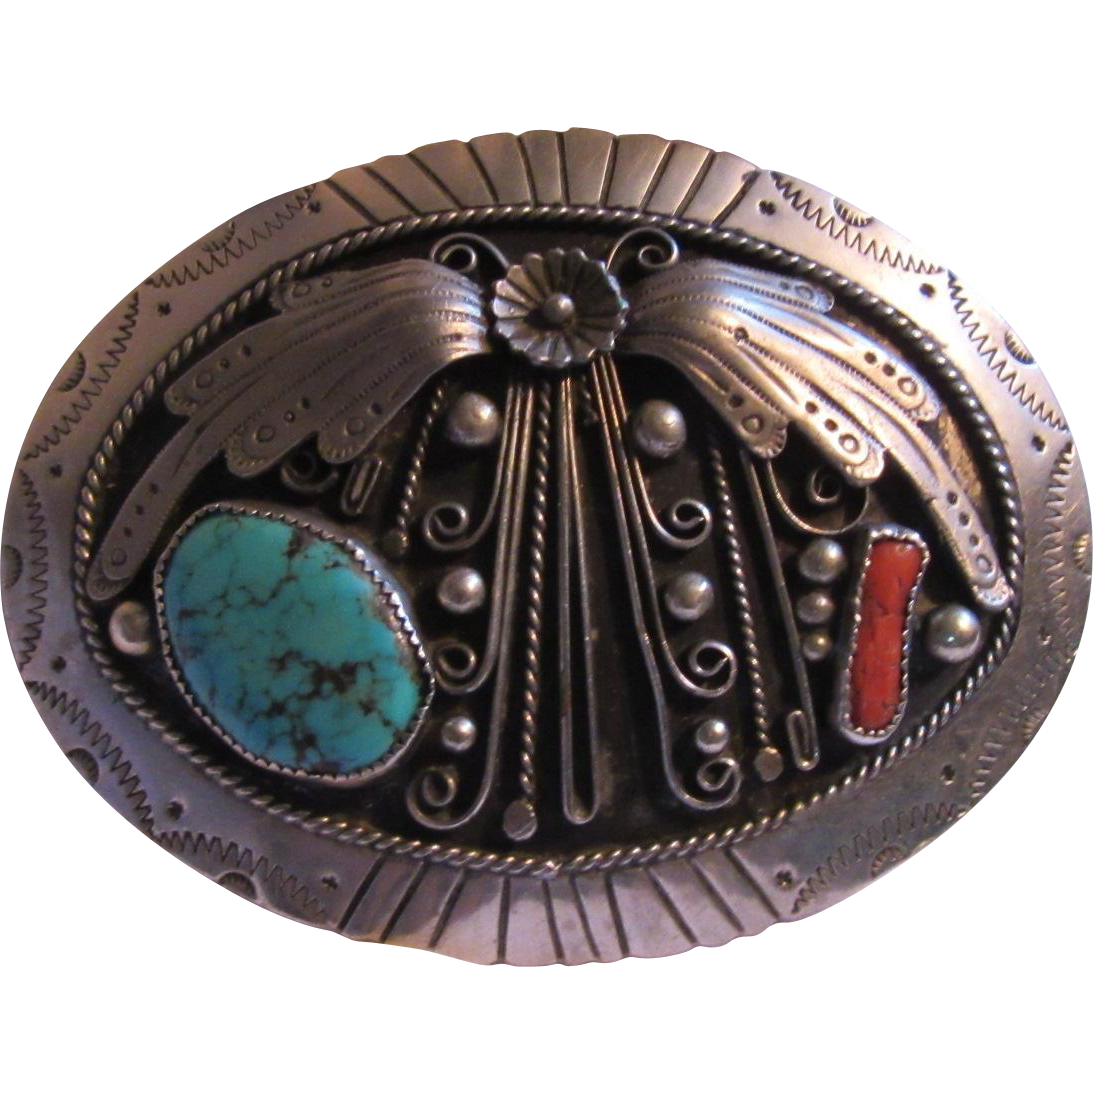 Native American Silver Turquoise Coral Ornate Belt Buckle Signed